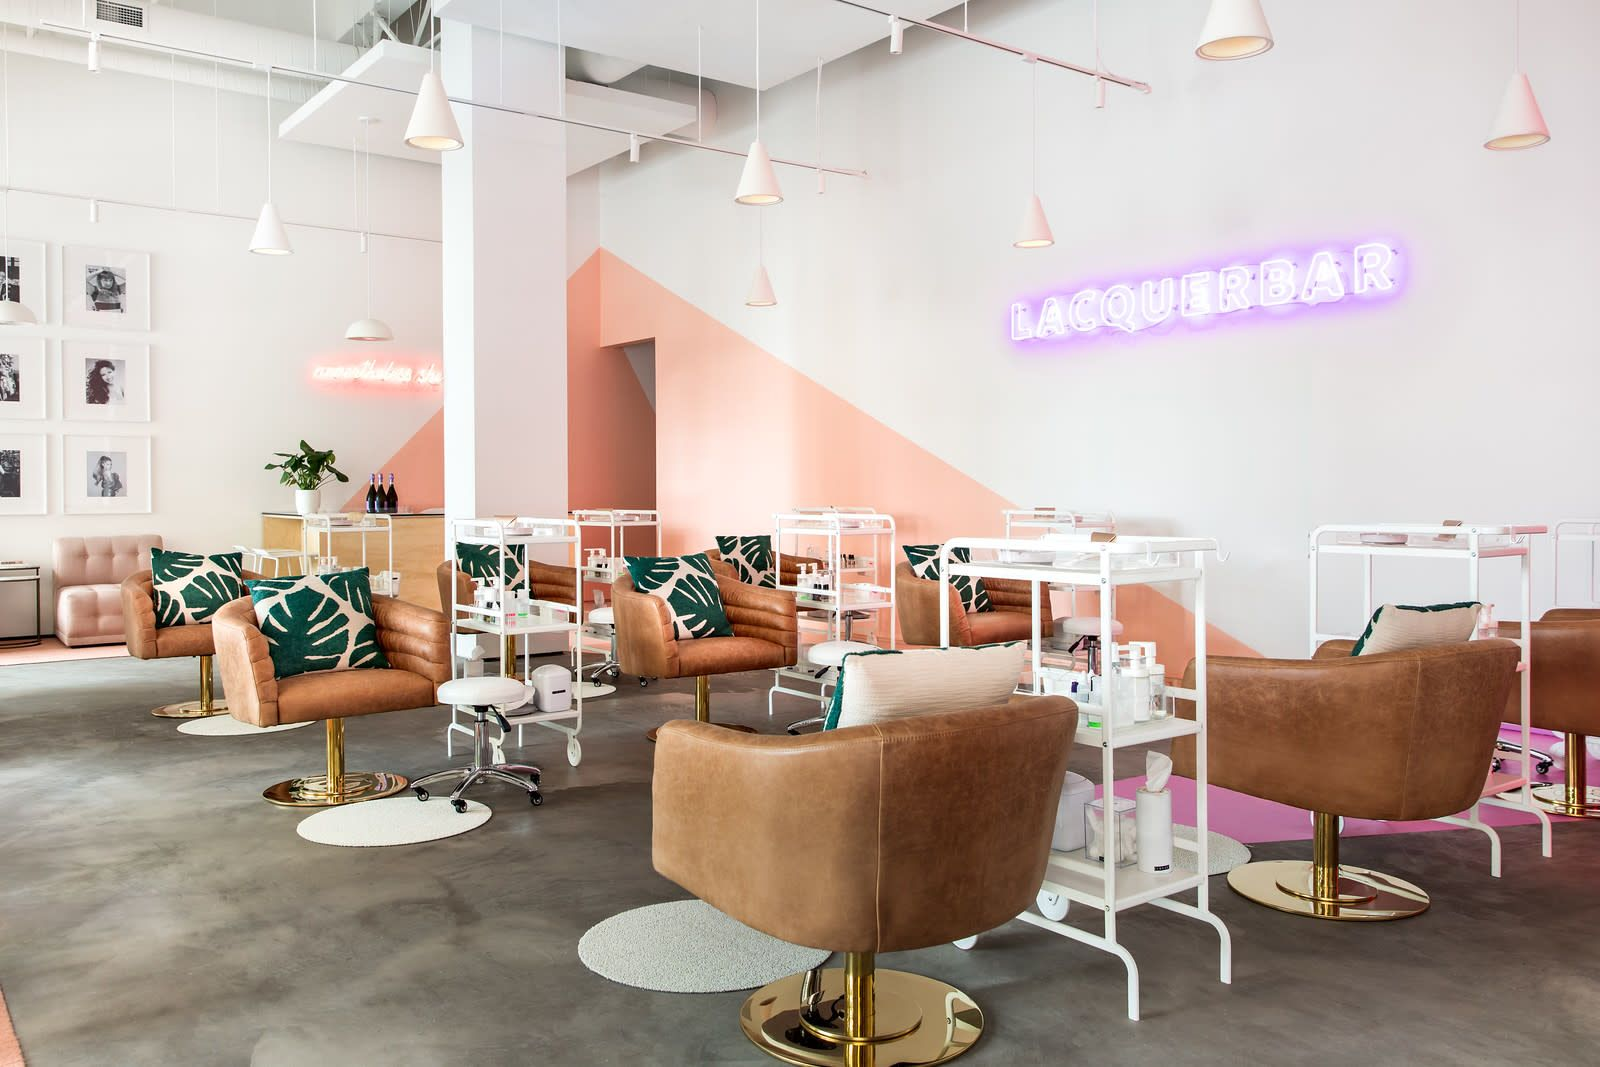 Instagramable Urban Modern Nail Bar With Feminist Touches Berkeley Ca Event Re